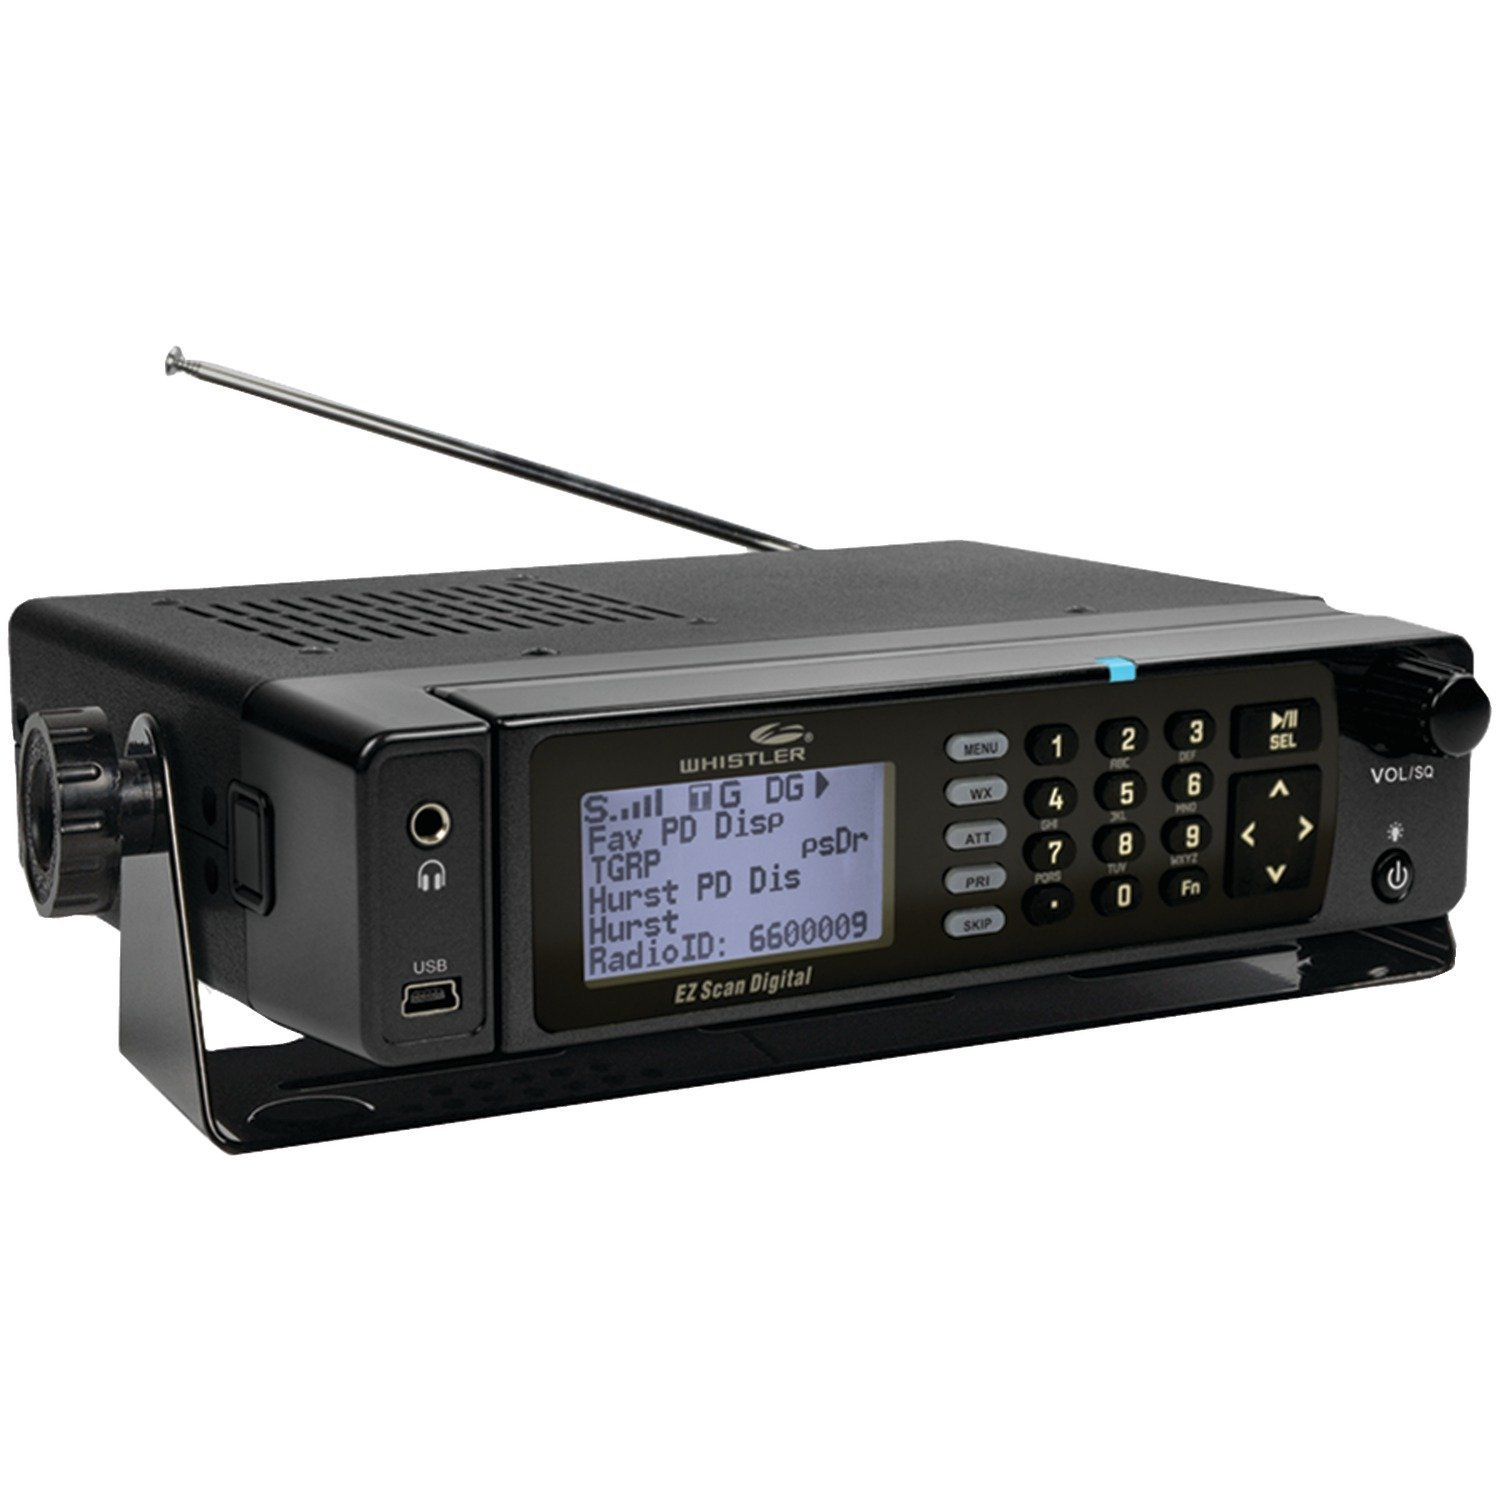 Whistler WS1098 Desktop Digital Scanner by Whistler (Image #1)